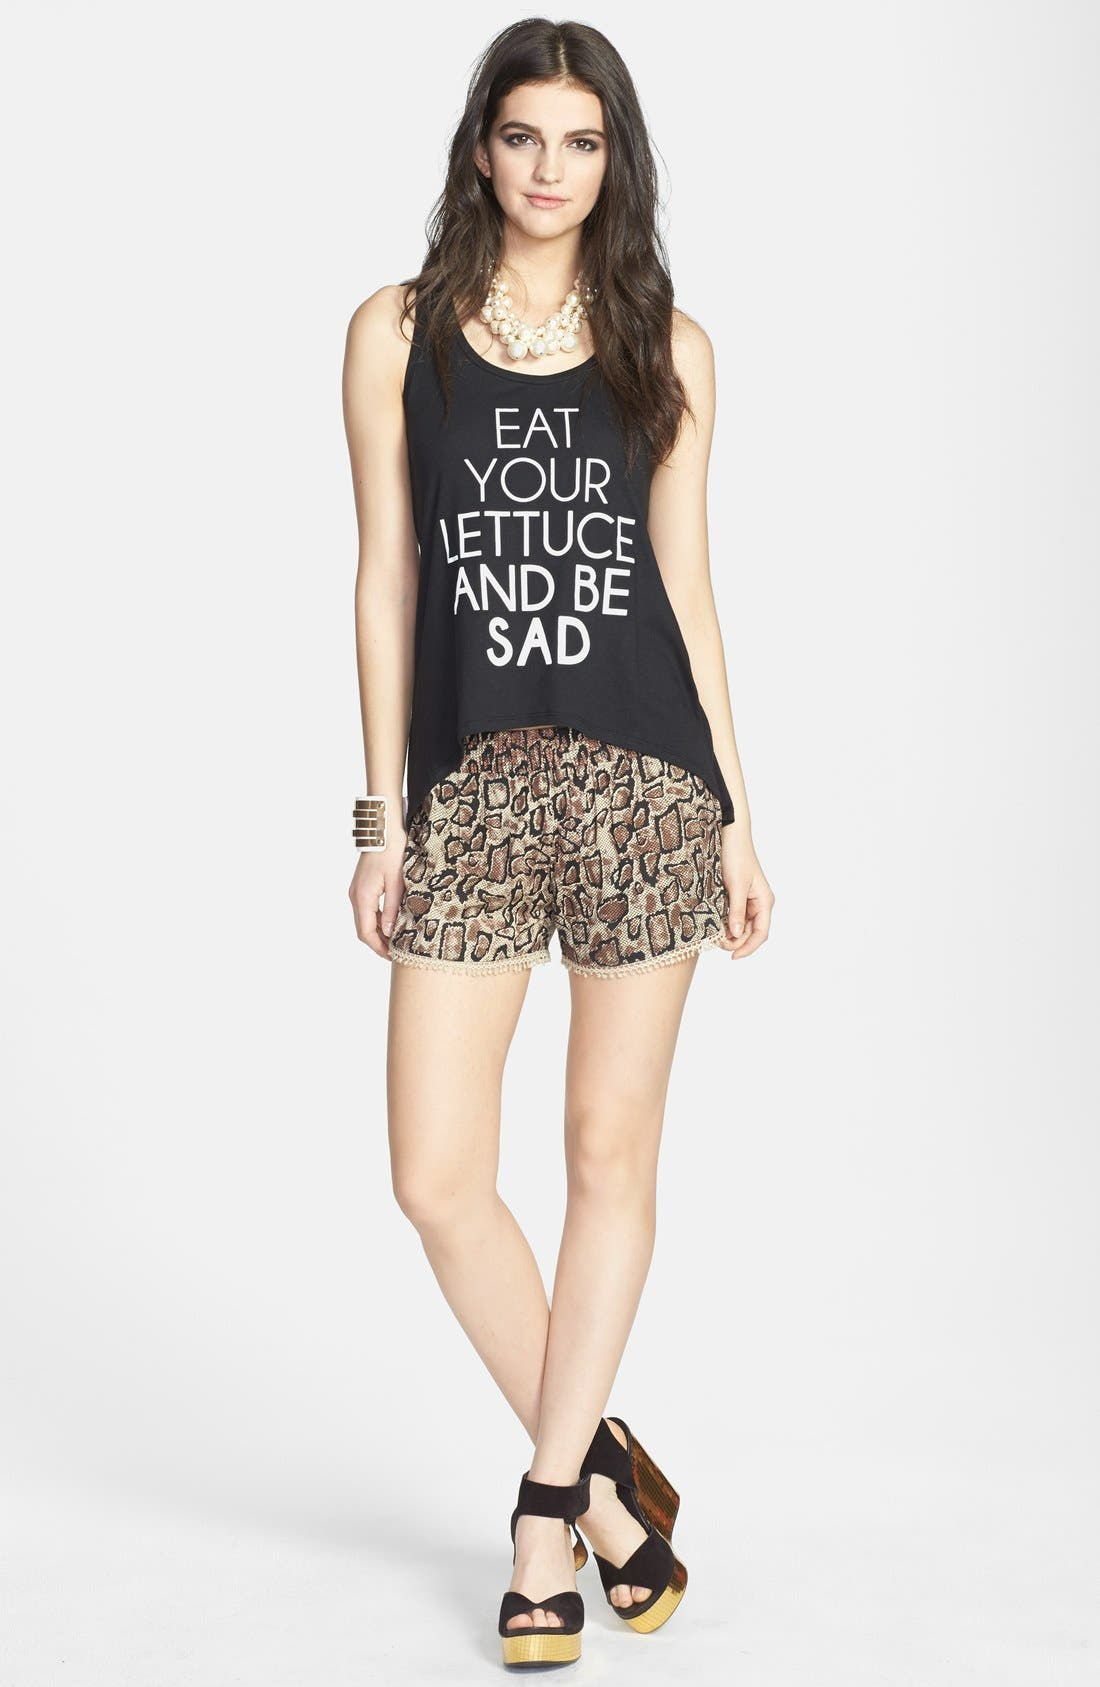 MADISON & BERKELEY,                             'Eat Your Lettuce and Be Sad' High/Low Tank,                             Alternate thumbnail 4, color,                             001